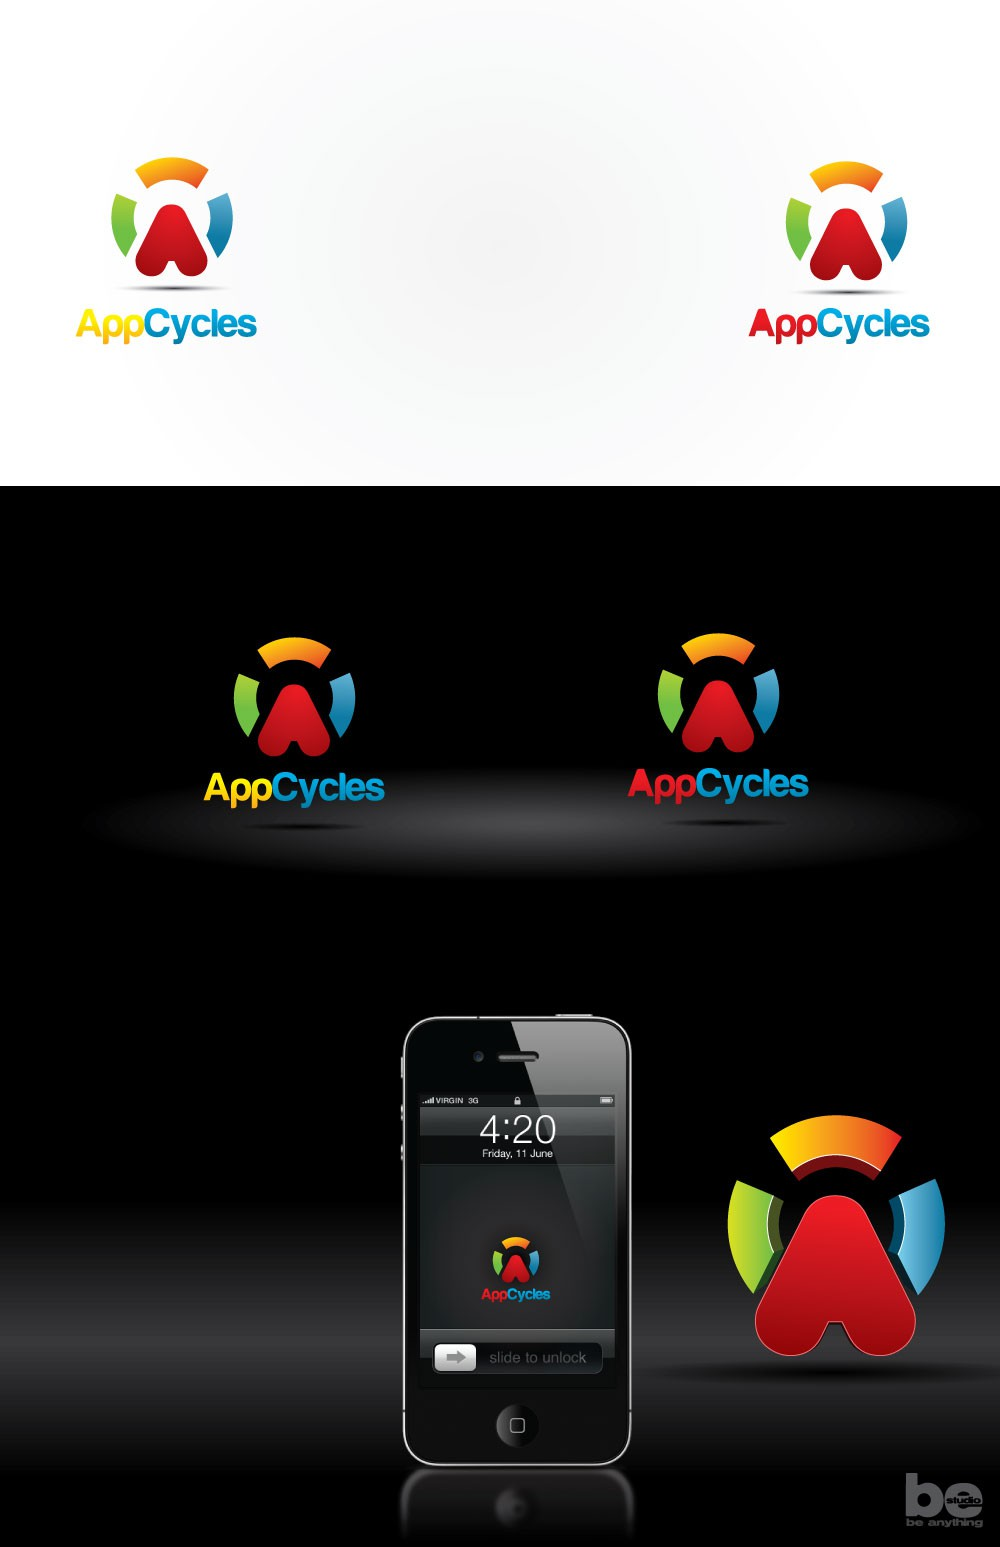 Need a brand new fun logo for AppCycles